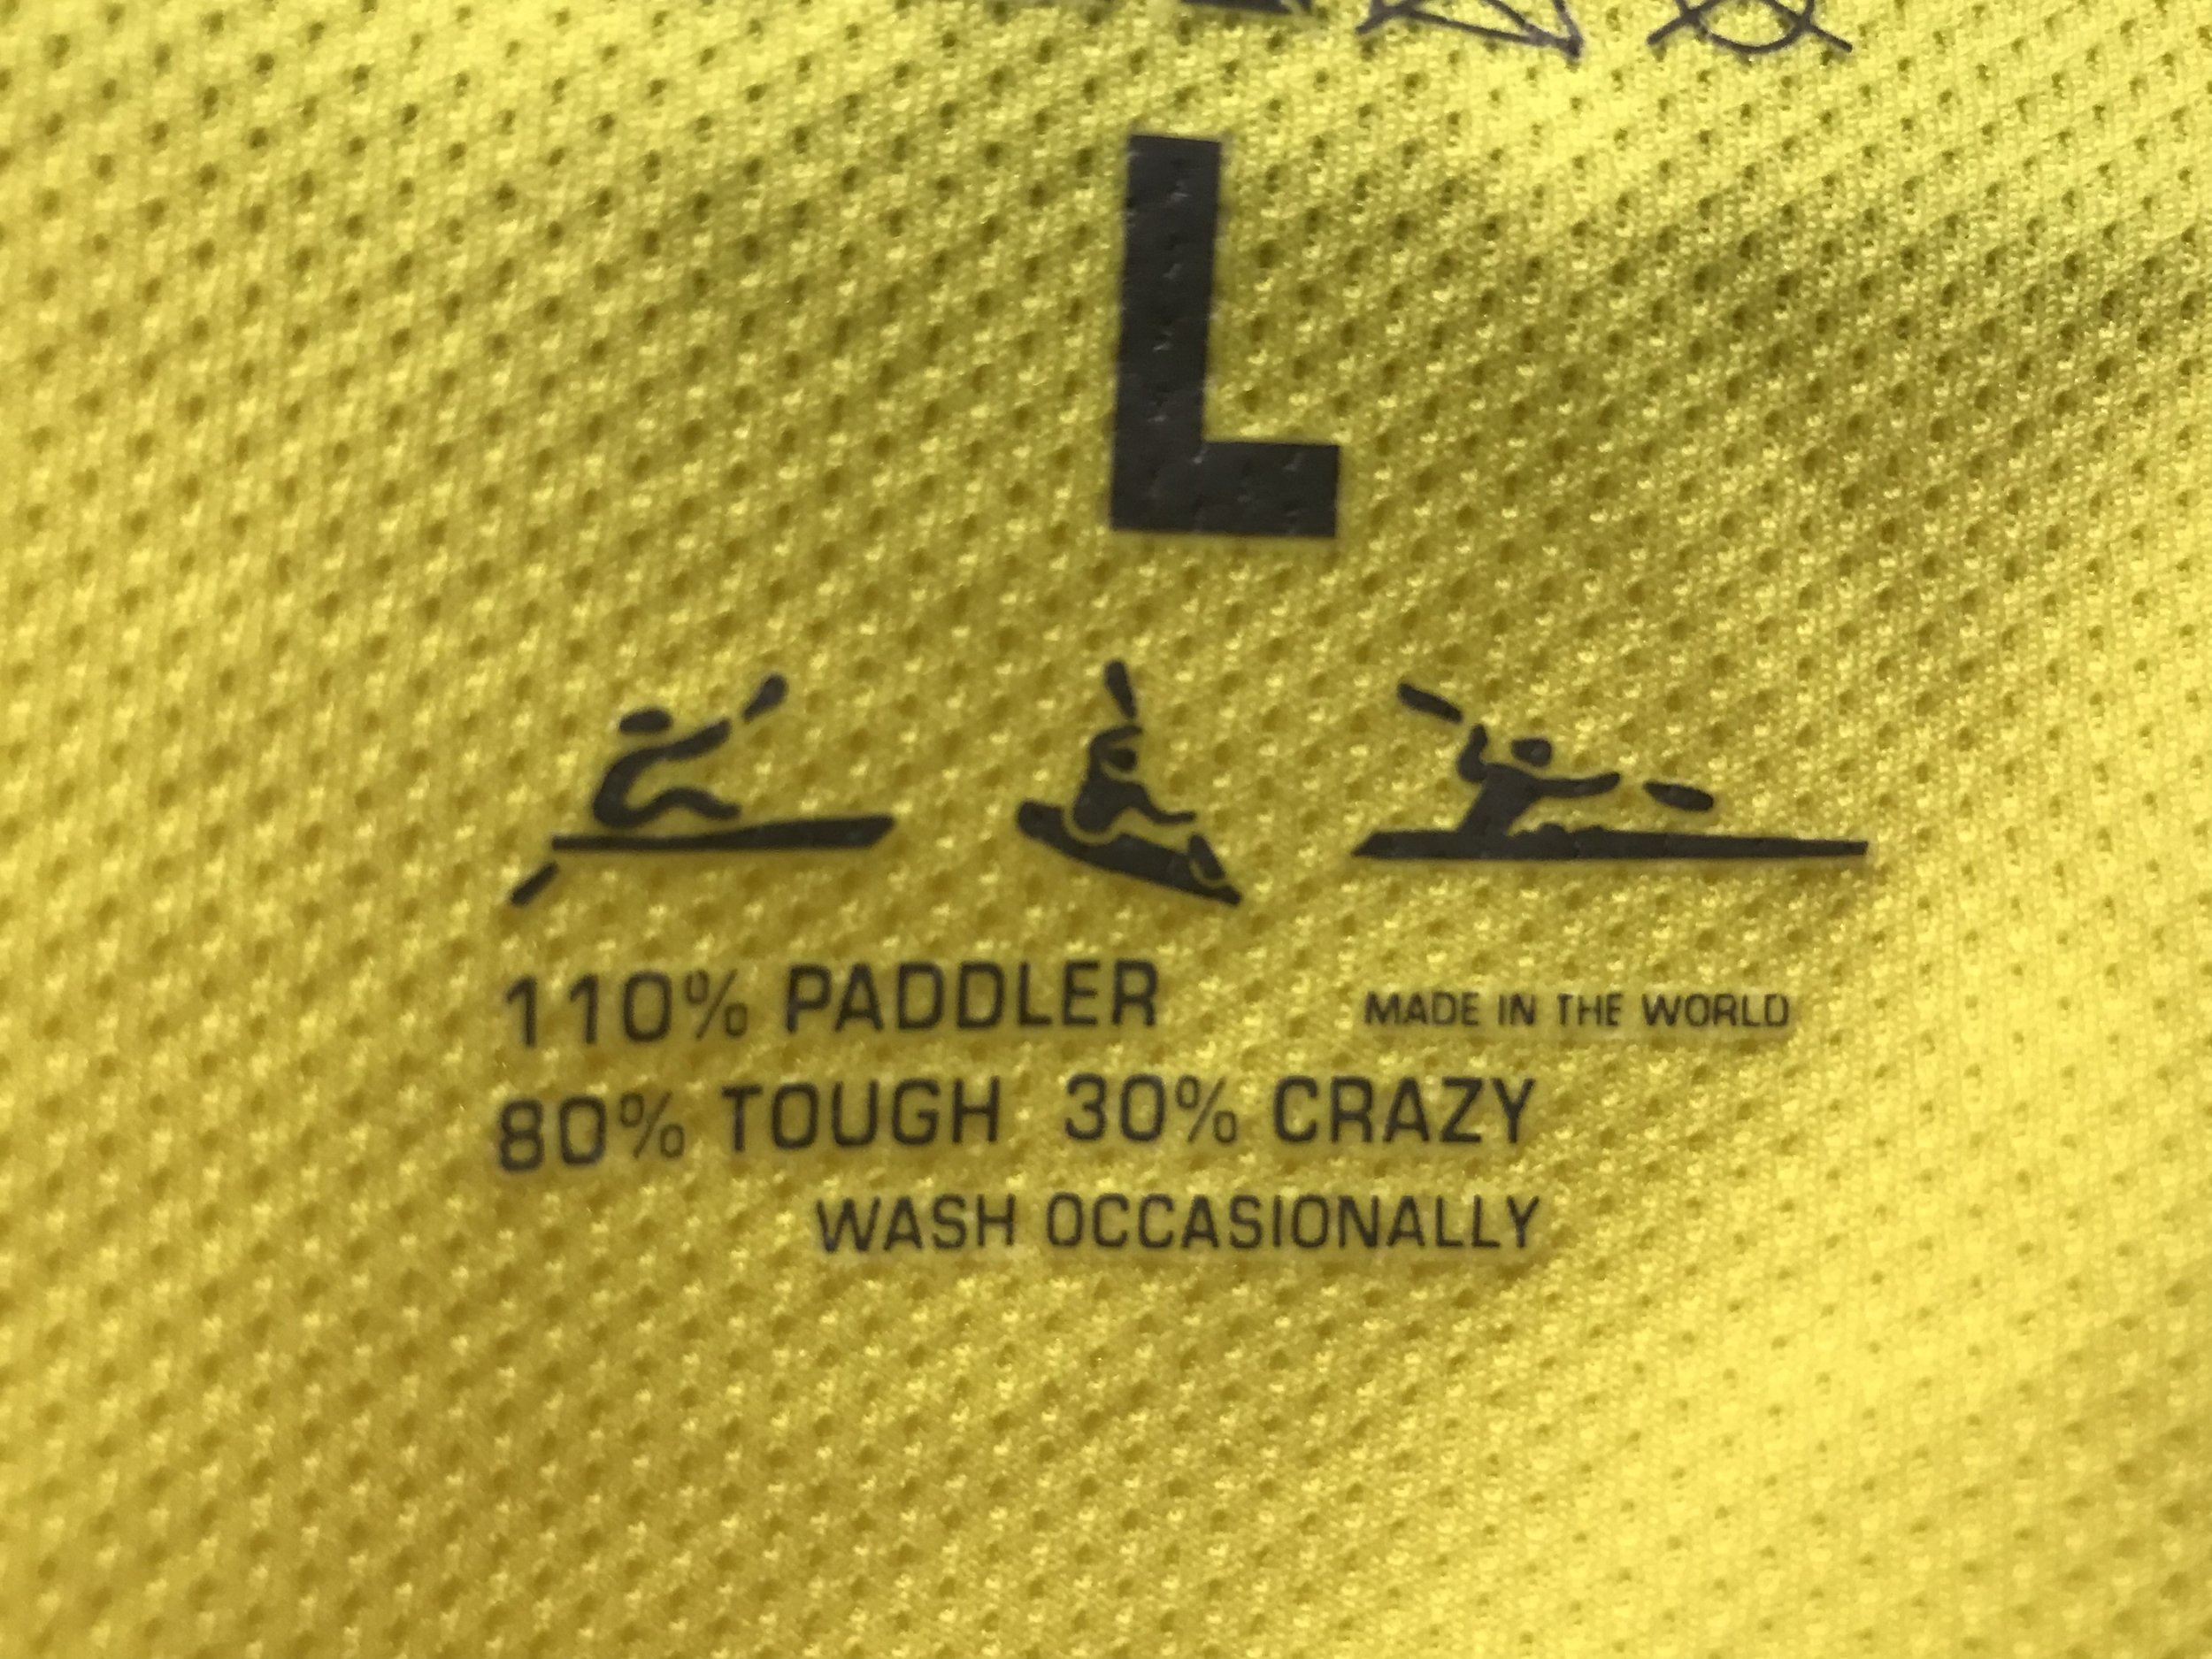 Now, what occasionally gets washed. The shirt or the paddler?